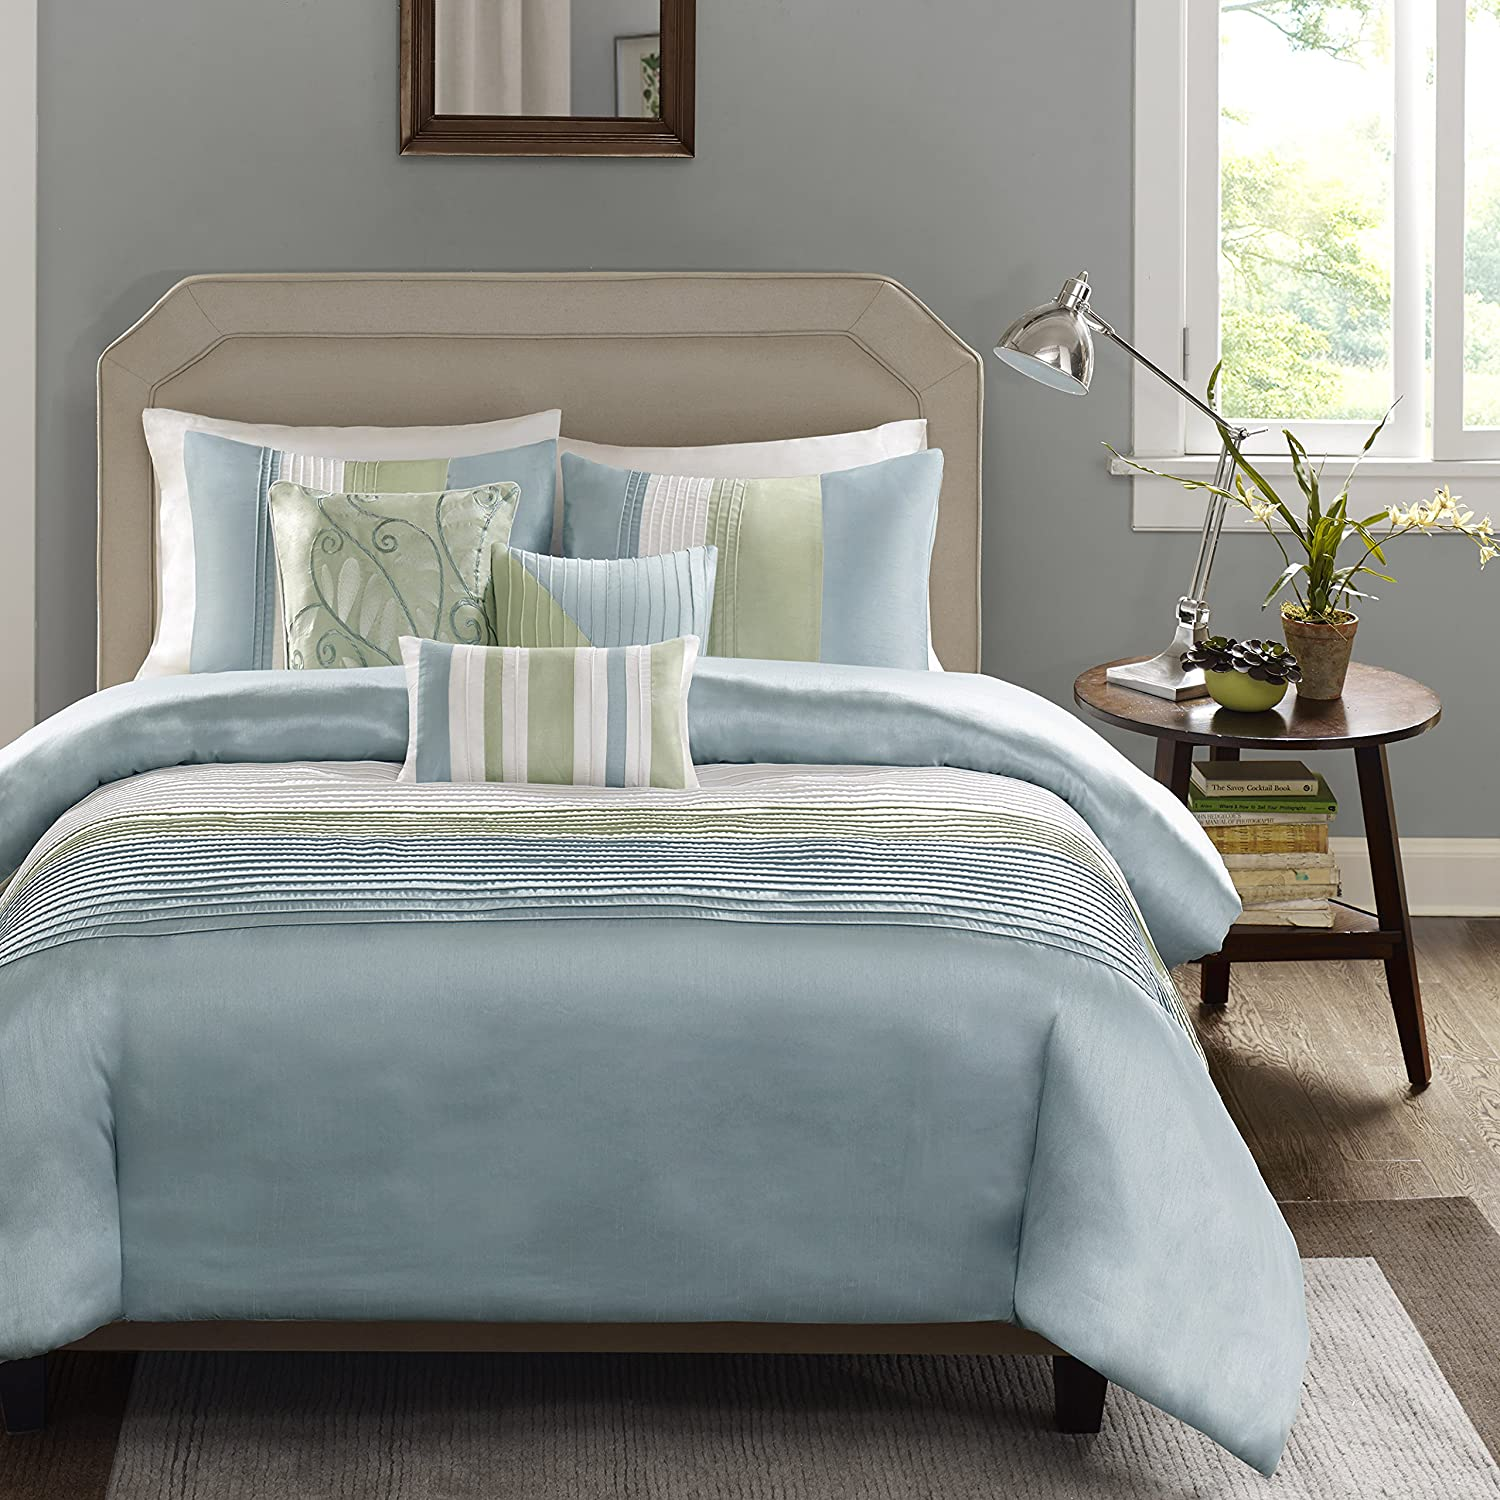 Madison Park Amherst Duvet Cover King Cal King Size - Green, Aqua, White , Pieced Stripes Duvet Cover Set – 6 Piece – Ultra Soft Microfiber Light Weight Bed Comforter Covers